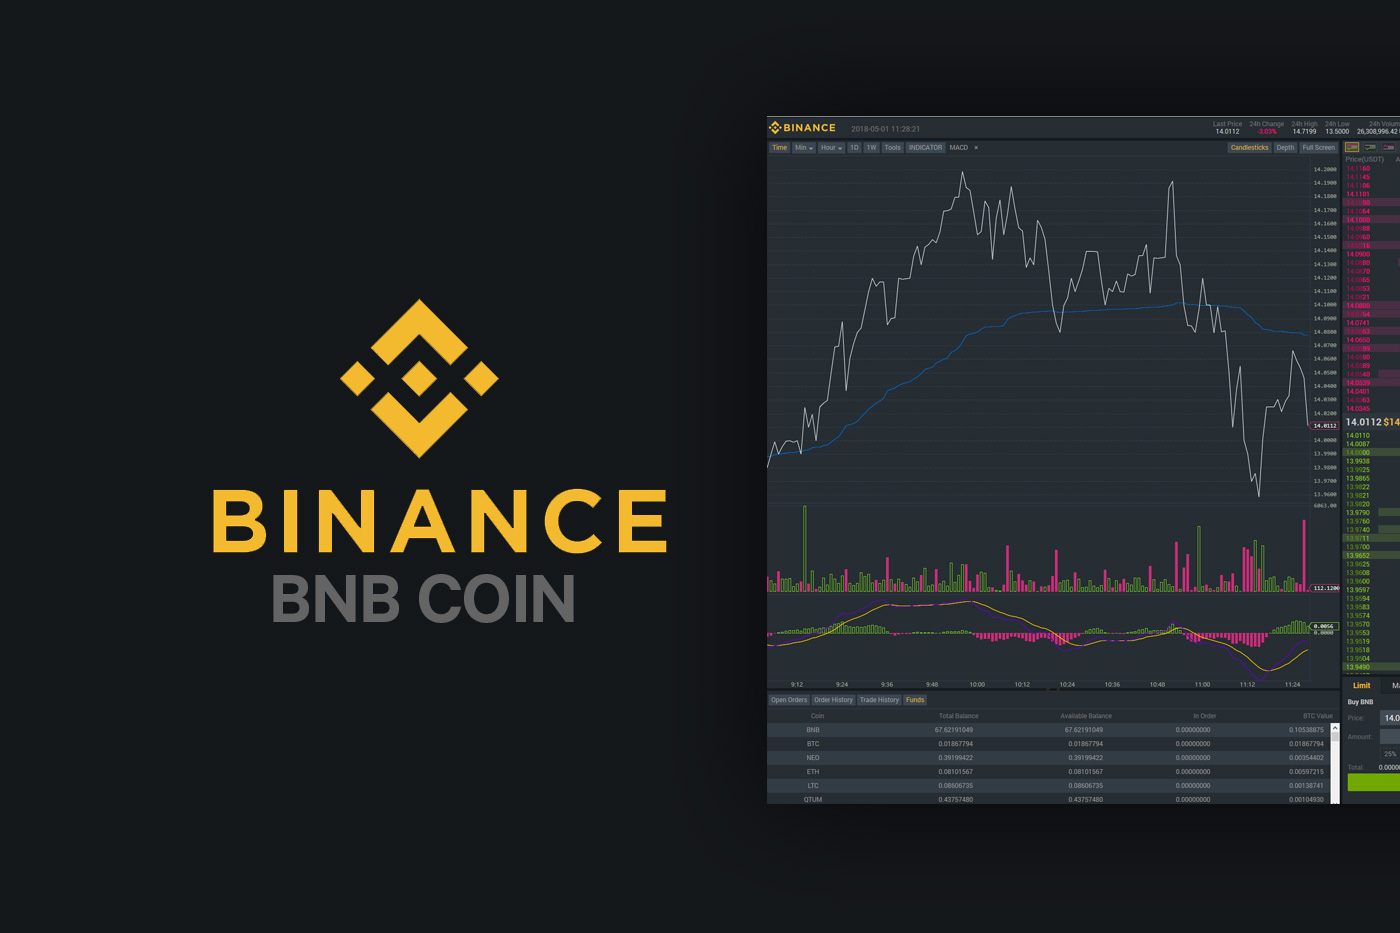 Binance BNB Coin